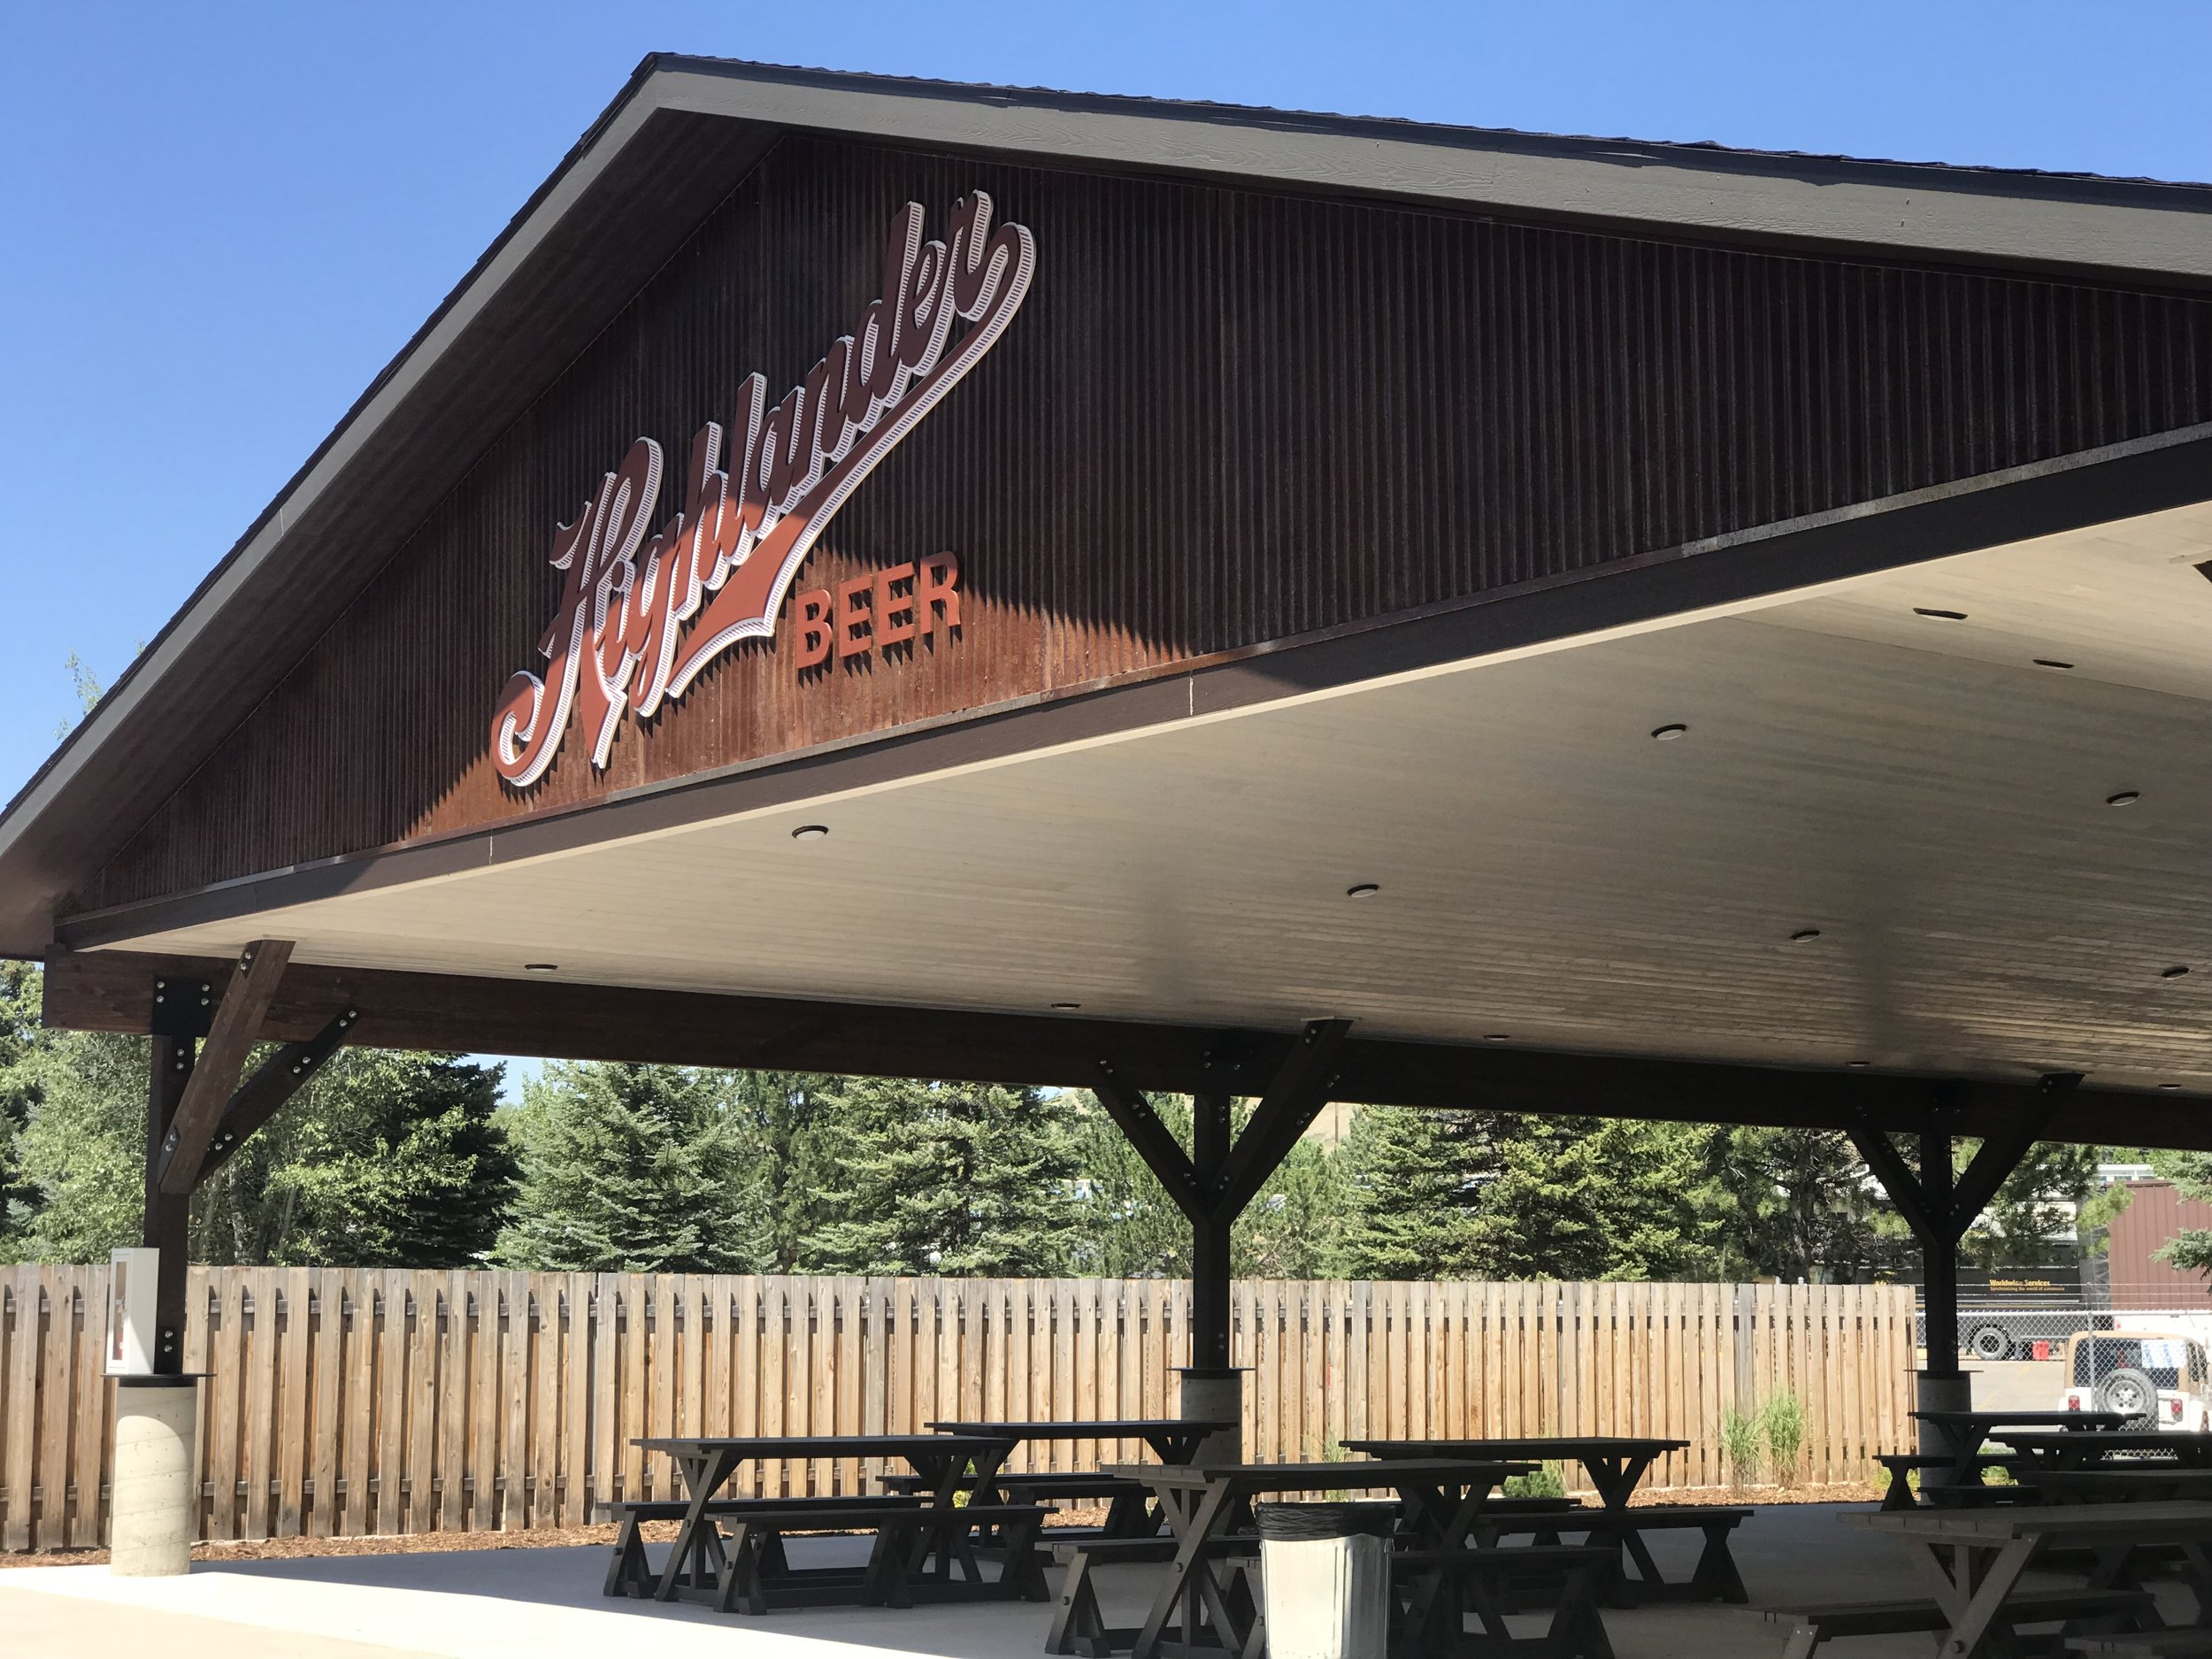 Welcome to the Highlander Pavilion - the perfect outdoor venue for your next bridal shower, retirement party, or corporate event